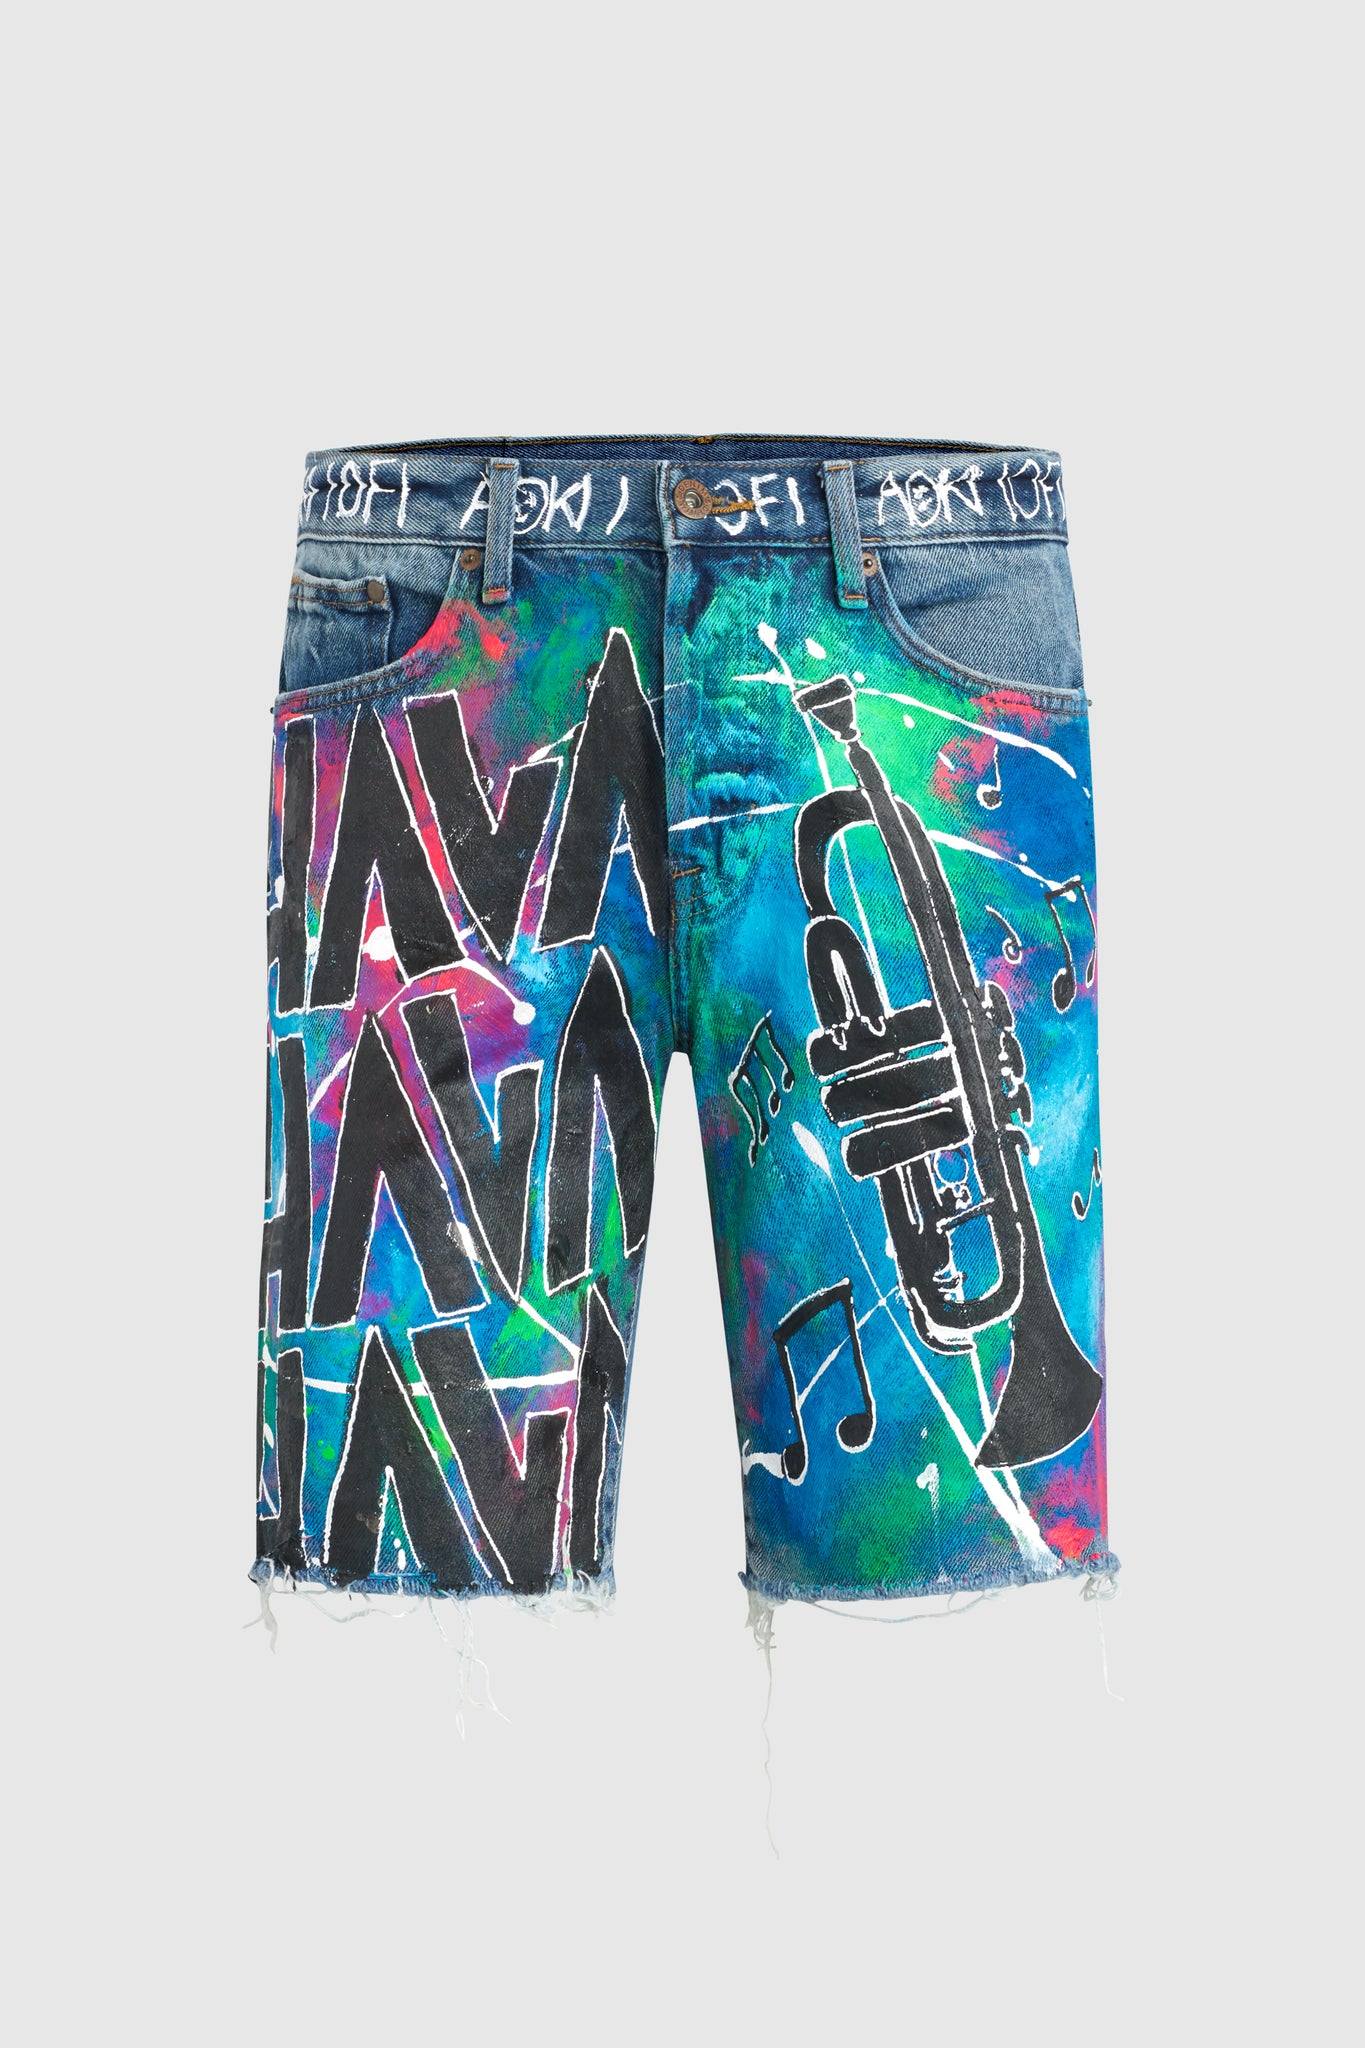 Hava Splatter Shorts #119 (custom for Timmy Trumpet)